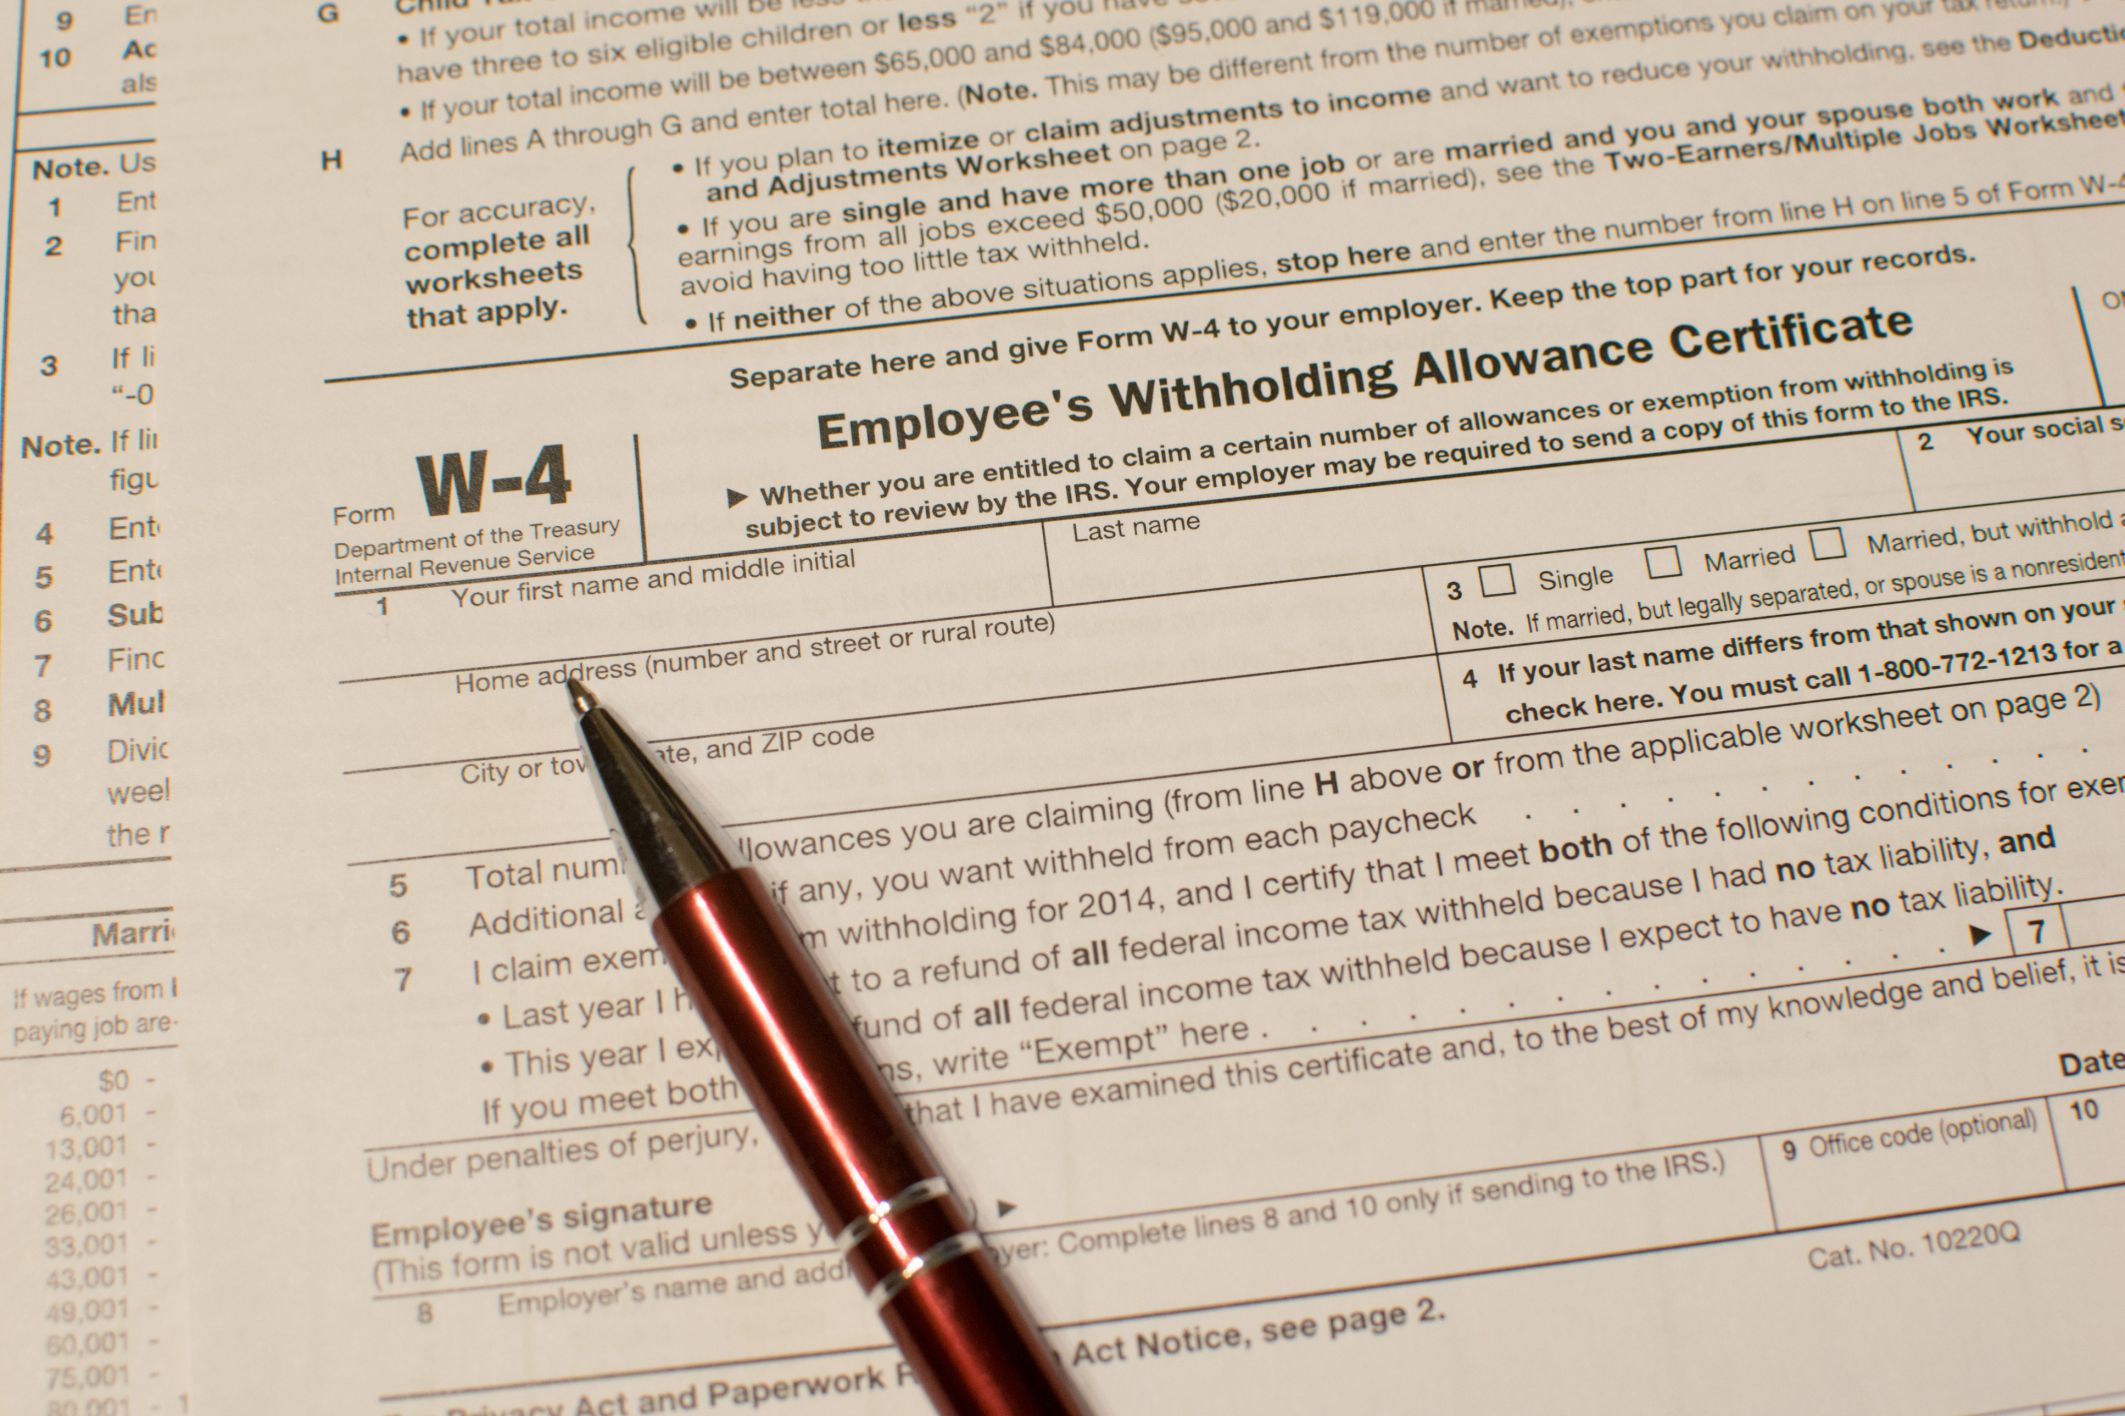 How To Fill Out Form W-4 In 2020 in Form W-9 2021